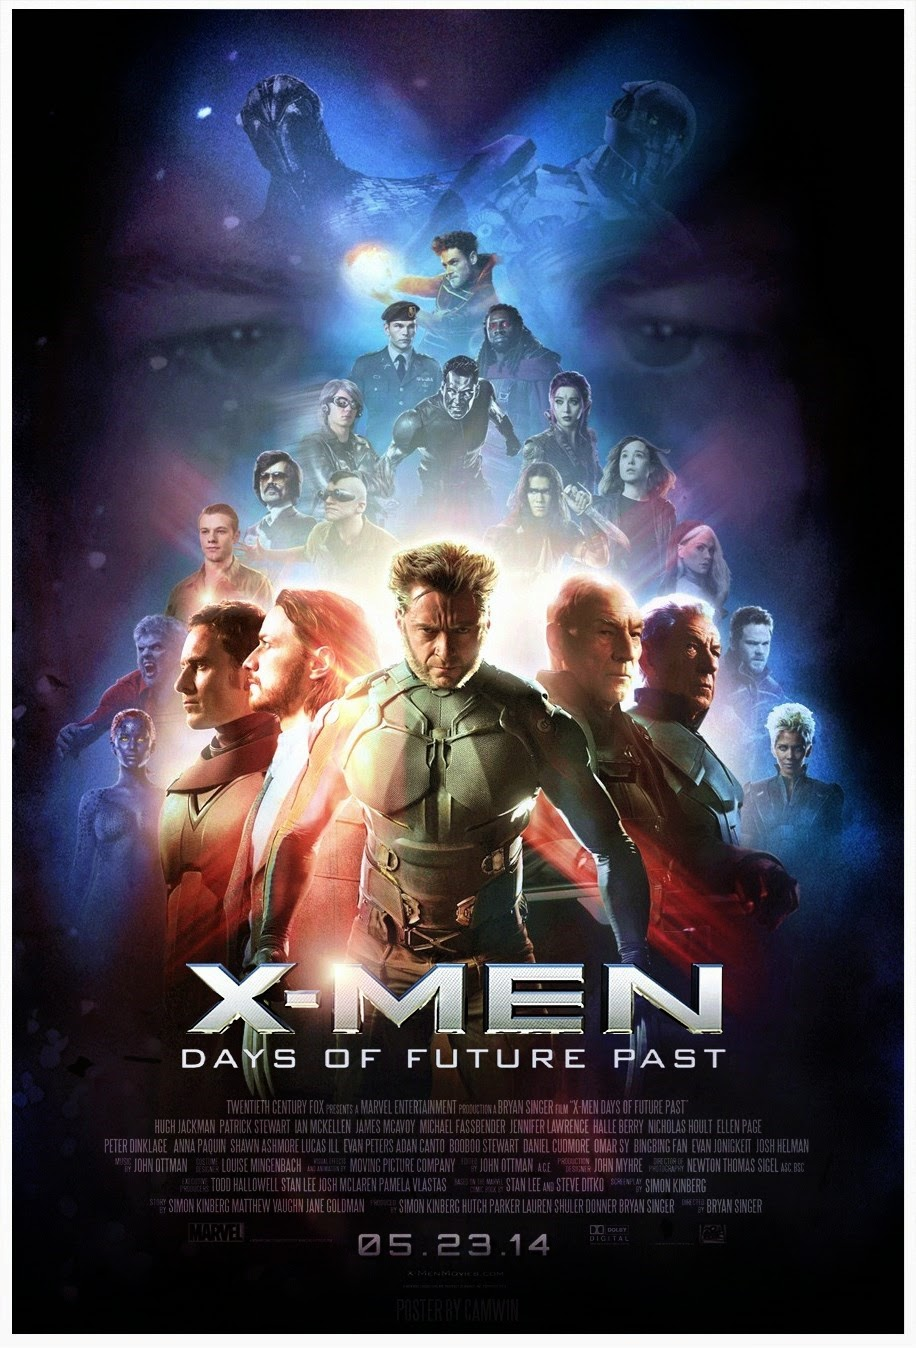 free download x-men days of future past subtitle indonesia - free movies